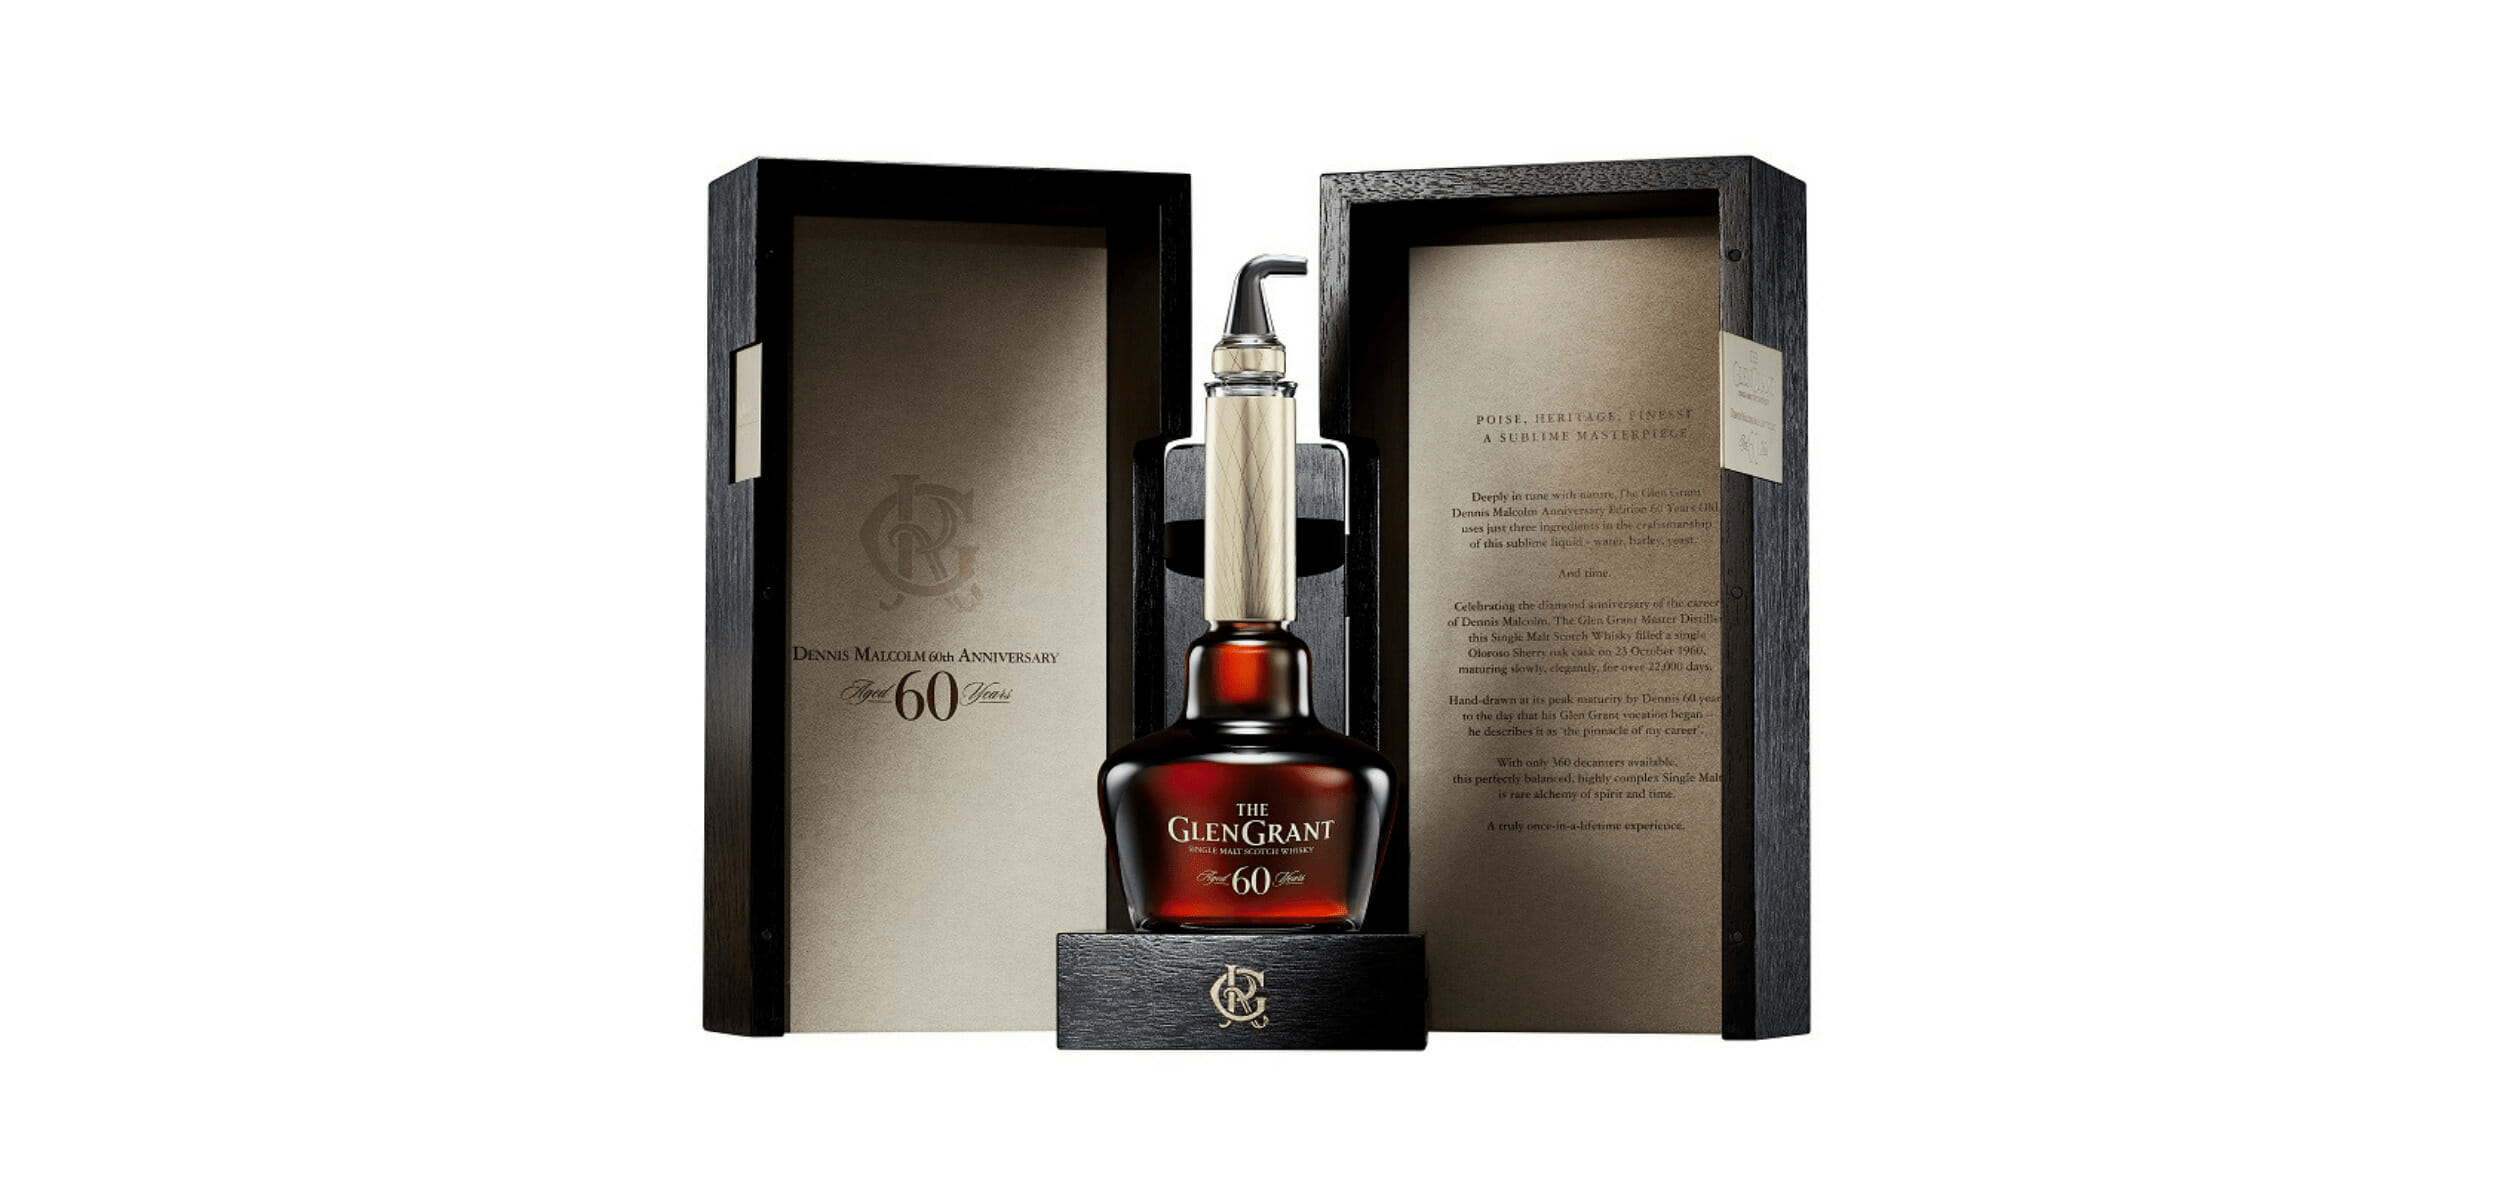 The Glen Grant Tributes Its Acclaimed Master Distiller With A Rare Limited Edition Whisky